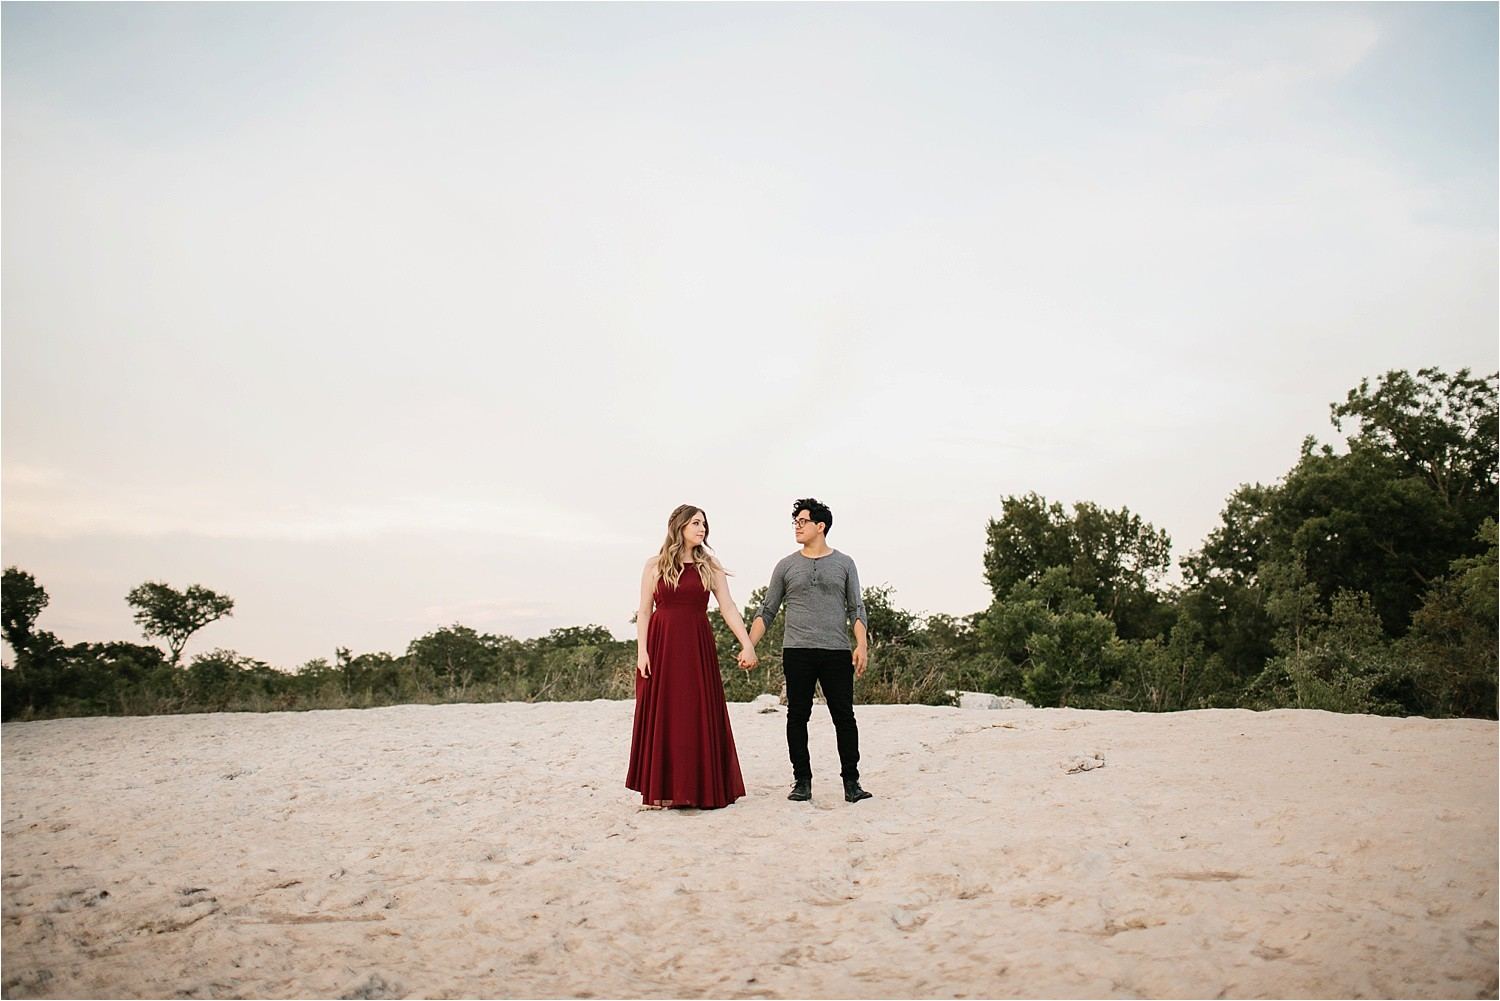 Romantic Austin, Texas Engagement Session with outfit inspiration + flowy red dress from Lulu's at Mckinney Falls State Park by North Texas Wedding Photographer, Rachel Meagan Photography __ 41